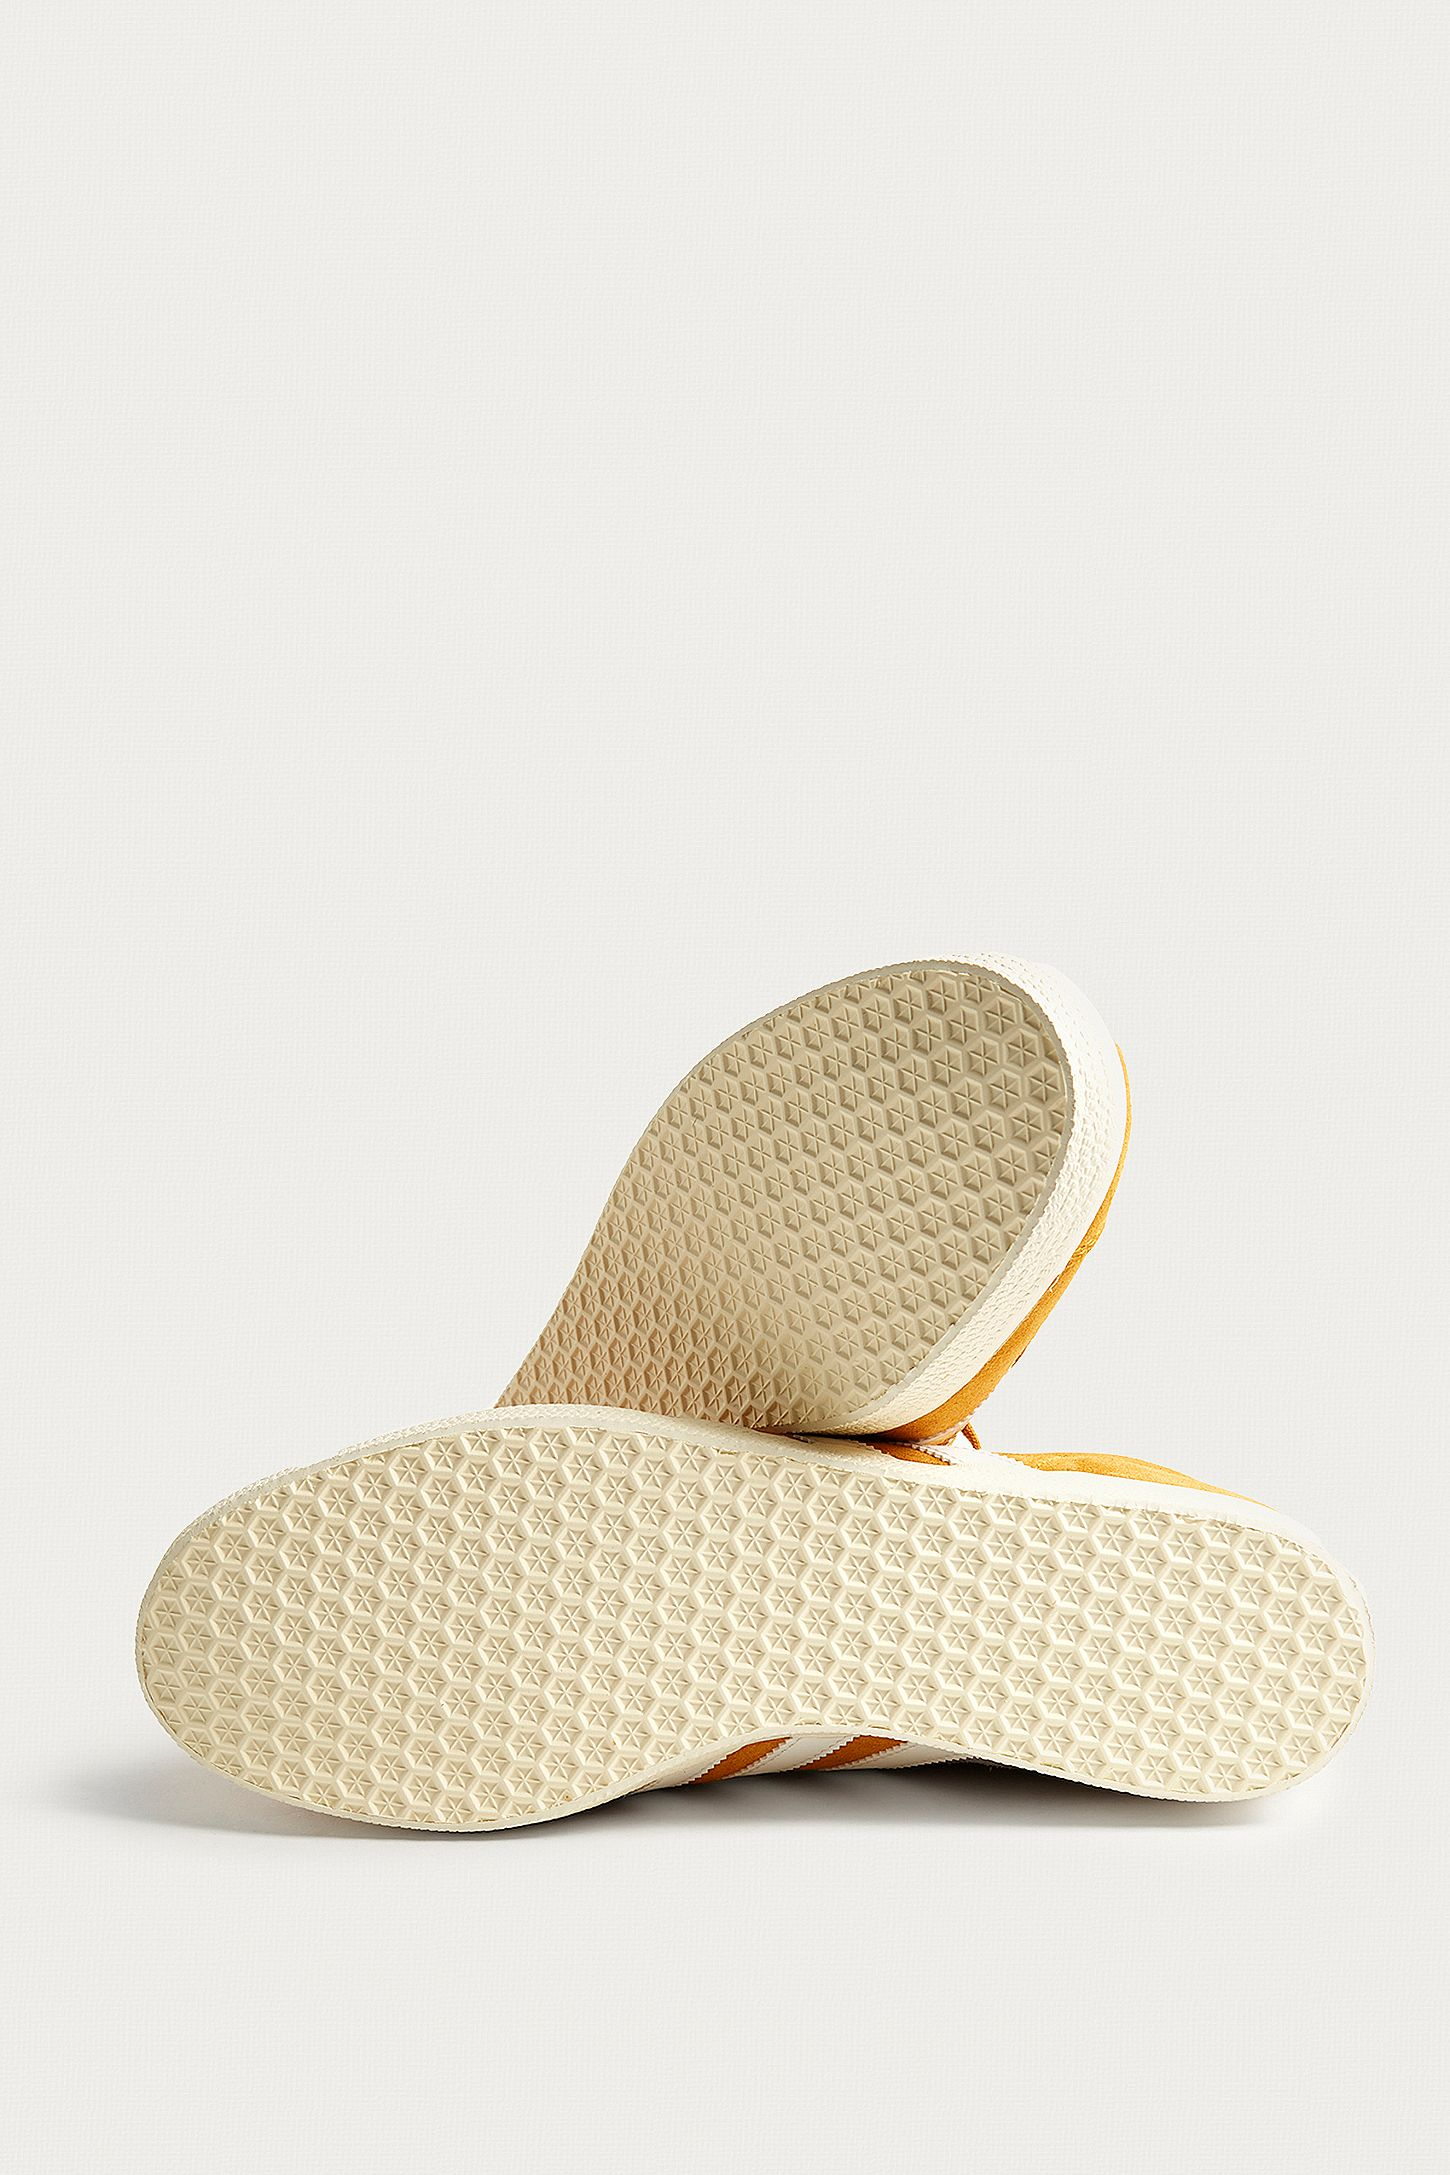 Slide View: 5: adidas Gazelle Gold Suede Trainers